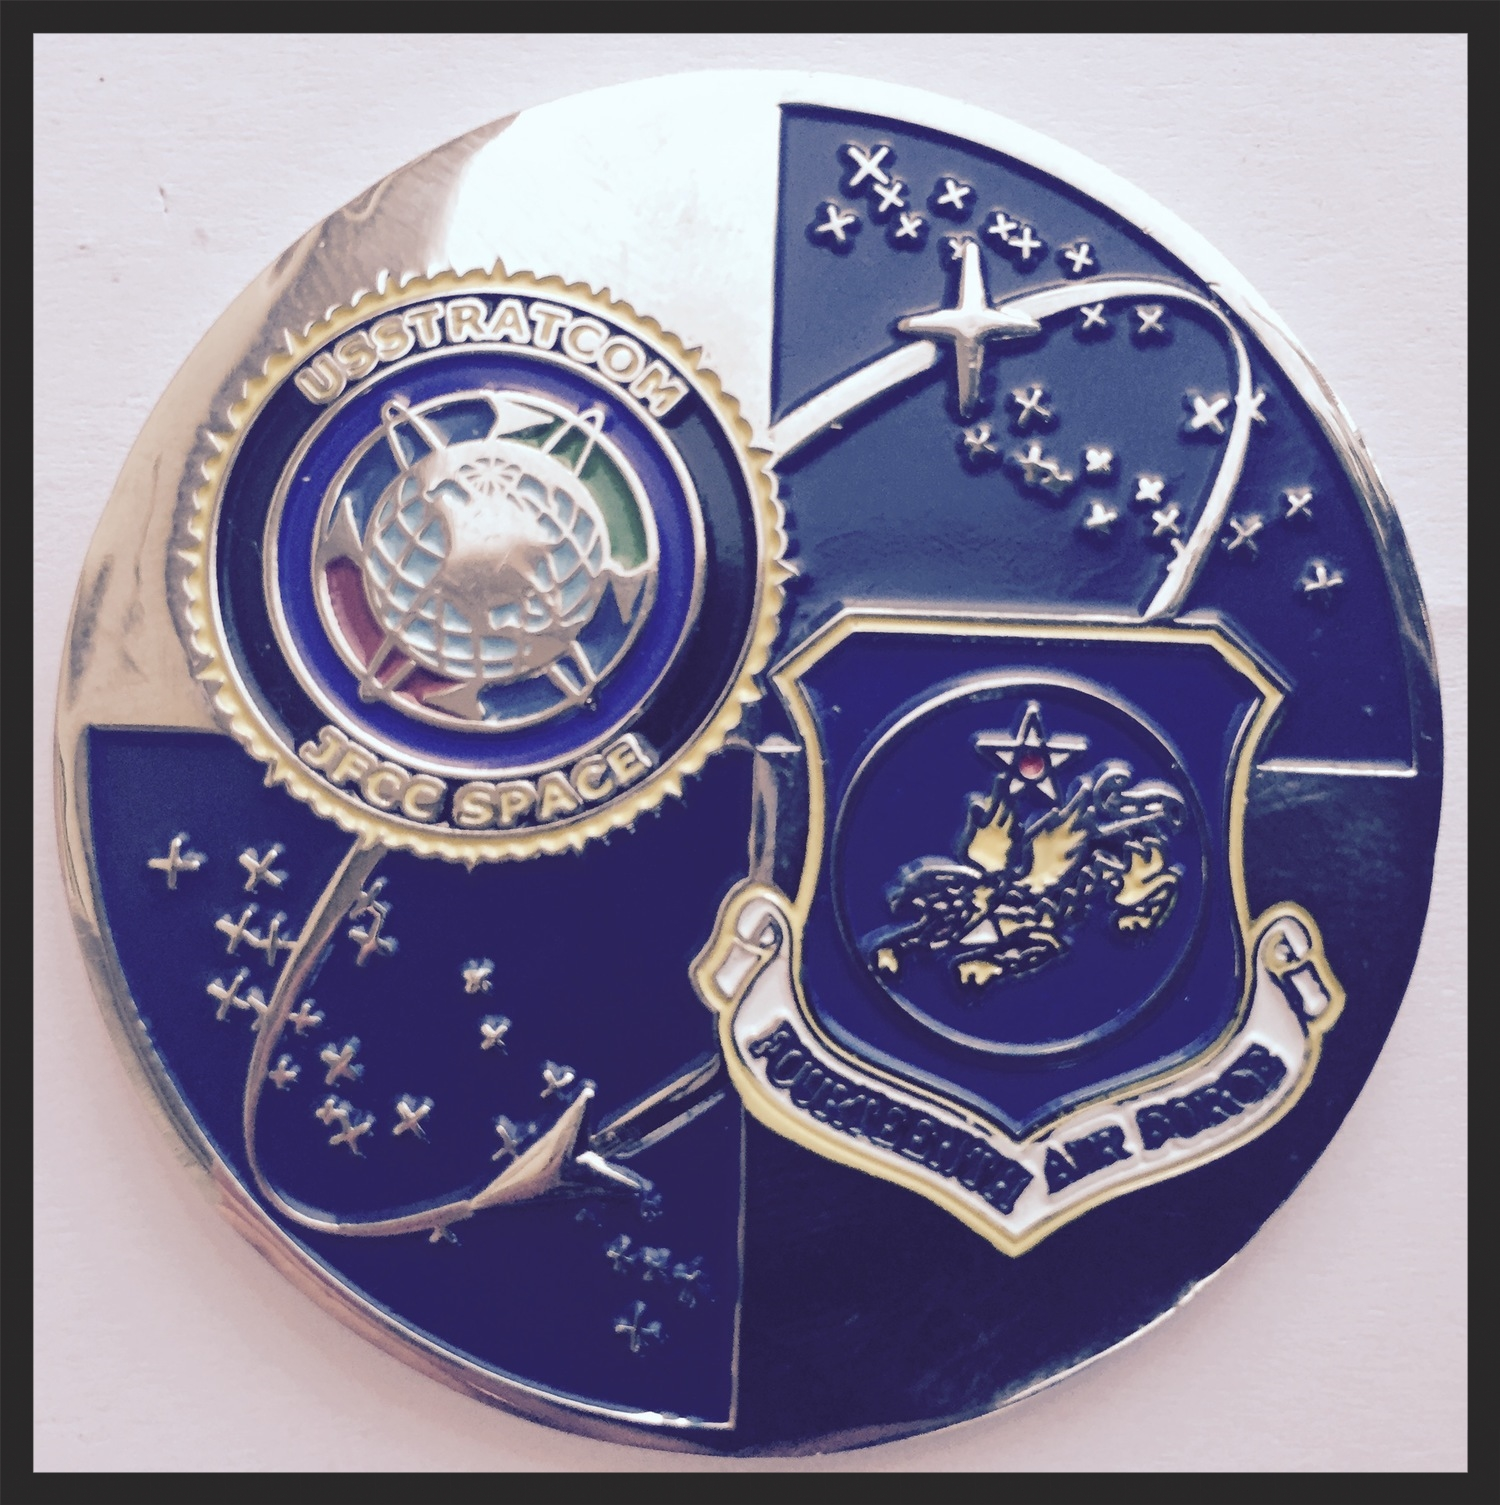 I received this from an  Air Force Command Chief Master Sergeantat the  Vandenberg  base in California. I remember the evening distinctly, since I also had the privilege of meeting two astronauts.